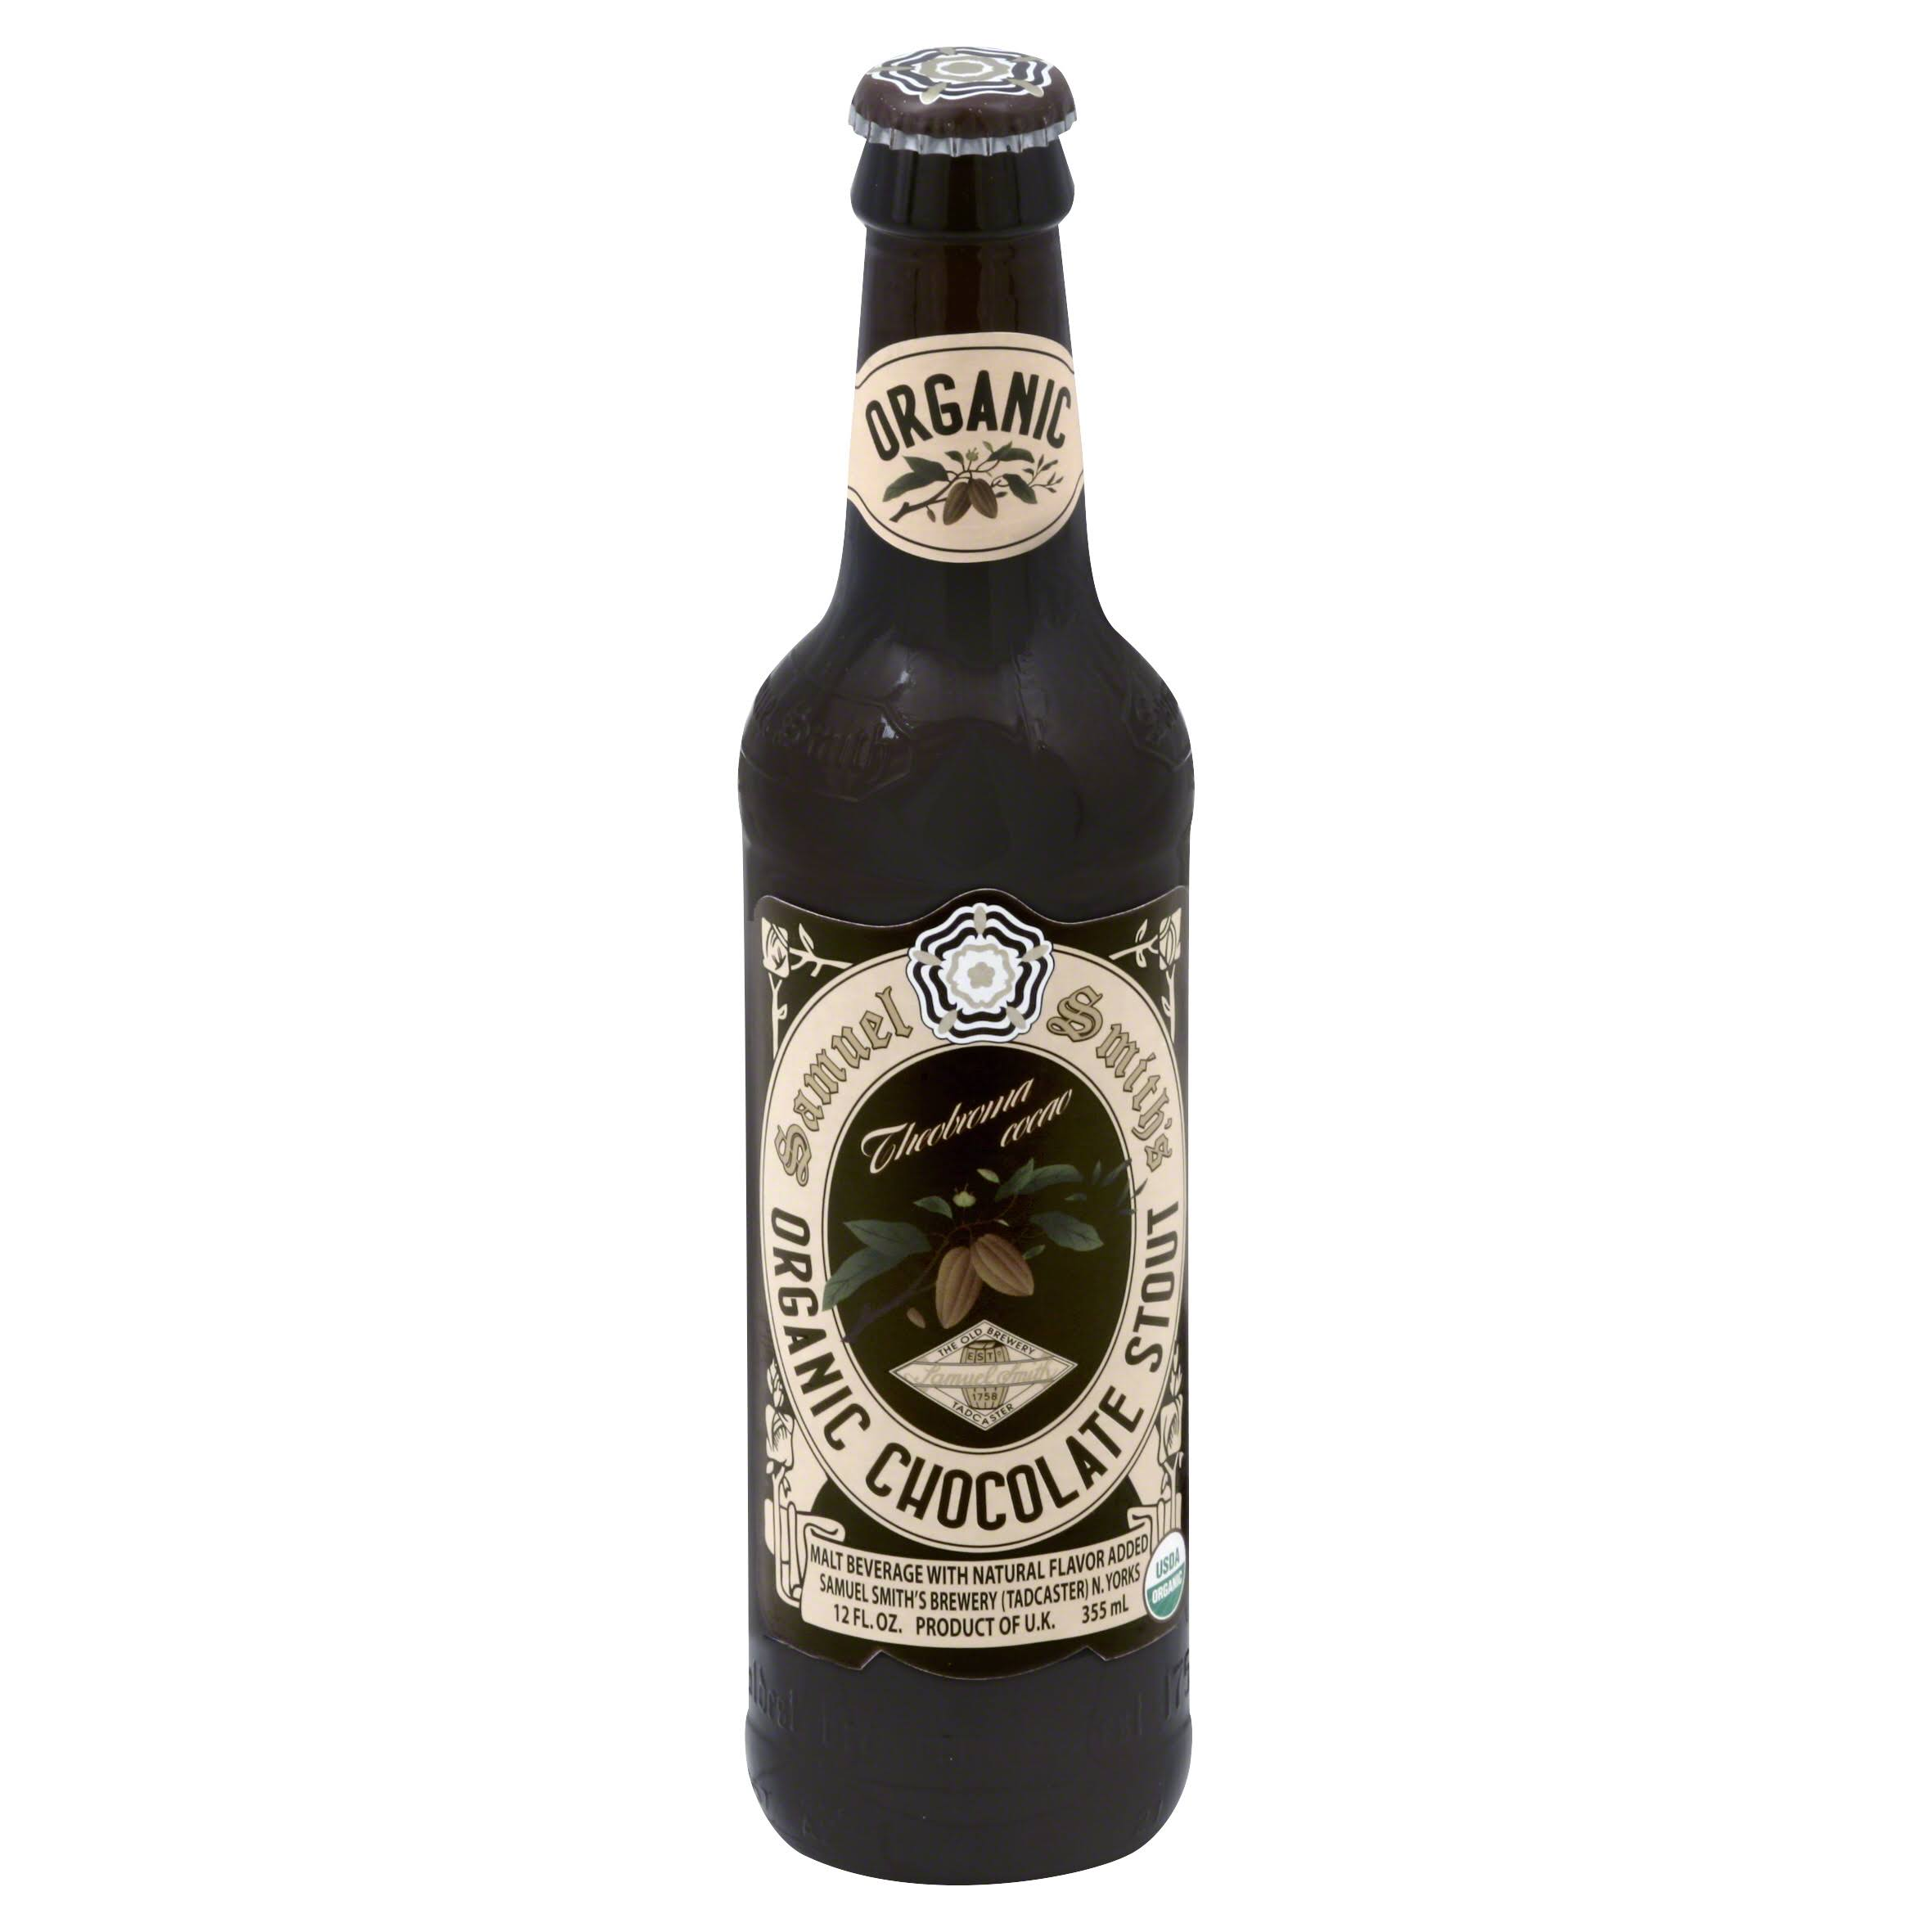 Samuel Smith Stout, Organic Chocolate - 12 fl oz